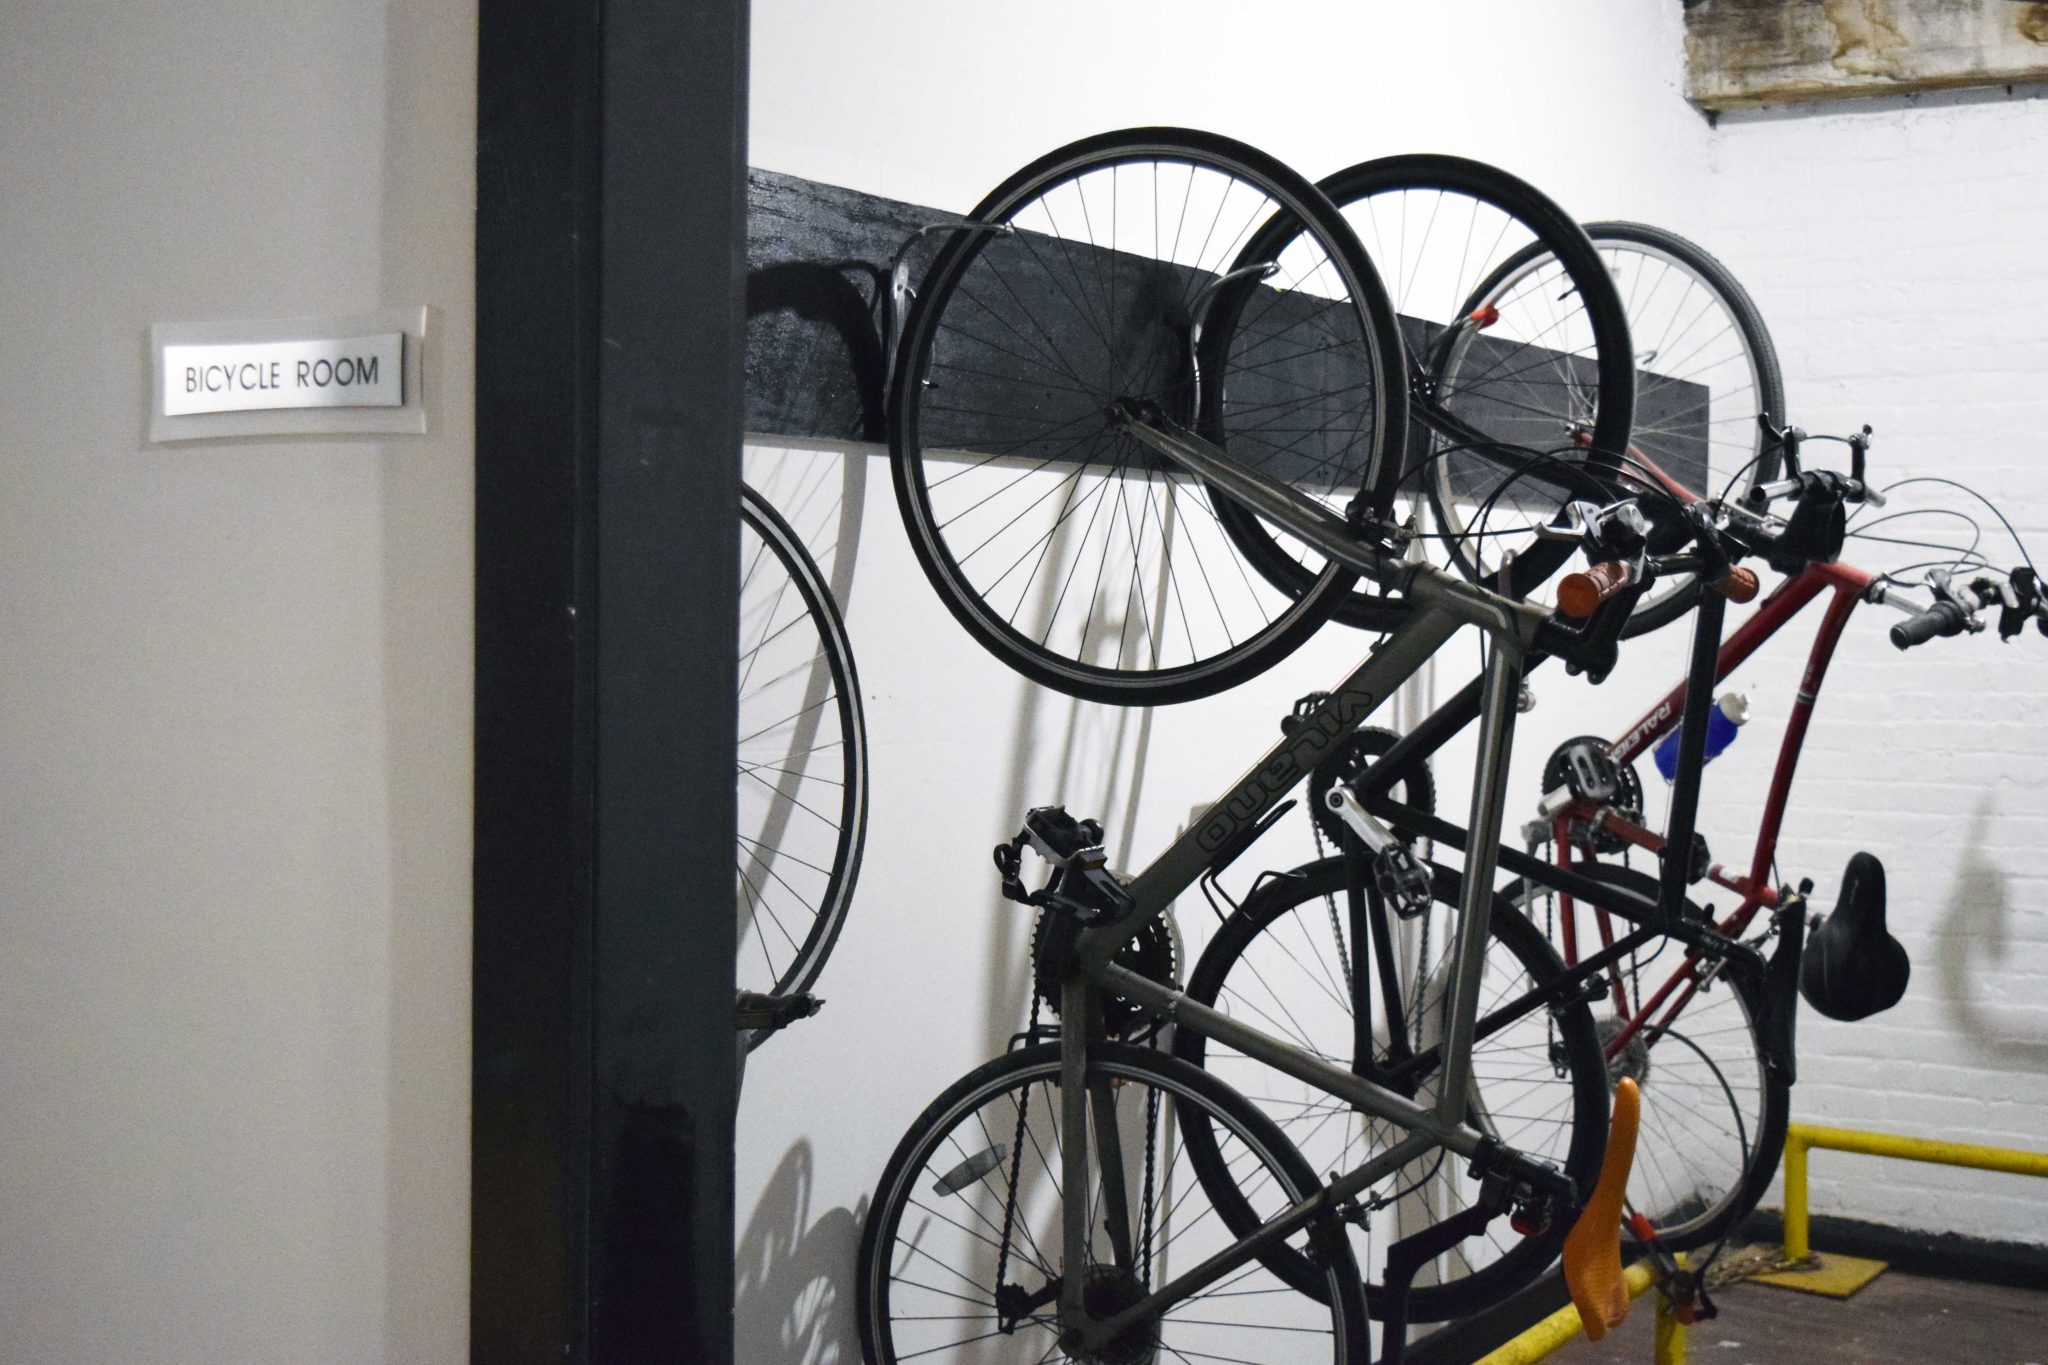 67 West Bike Room